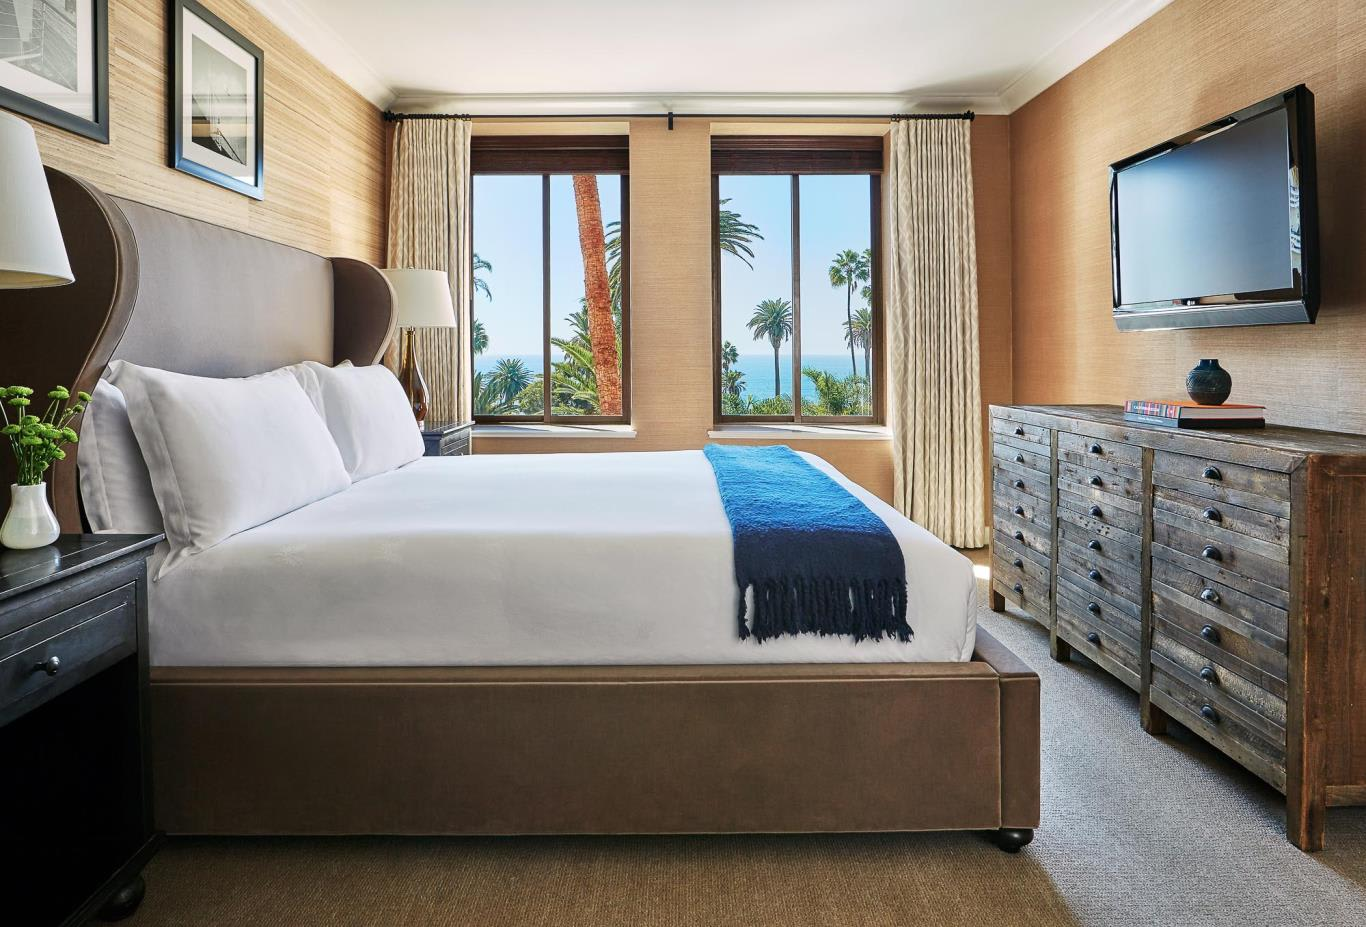 Signature Ocean View Suite bedroom